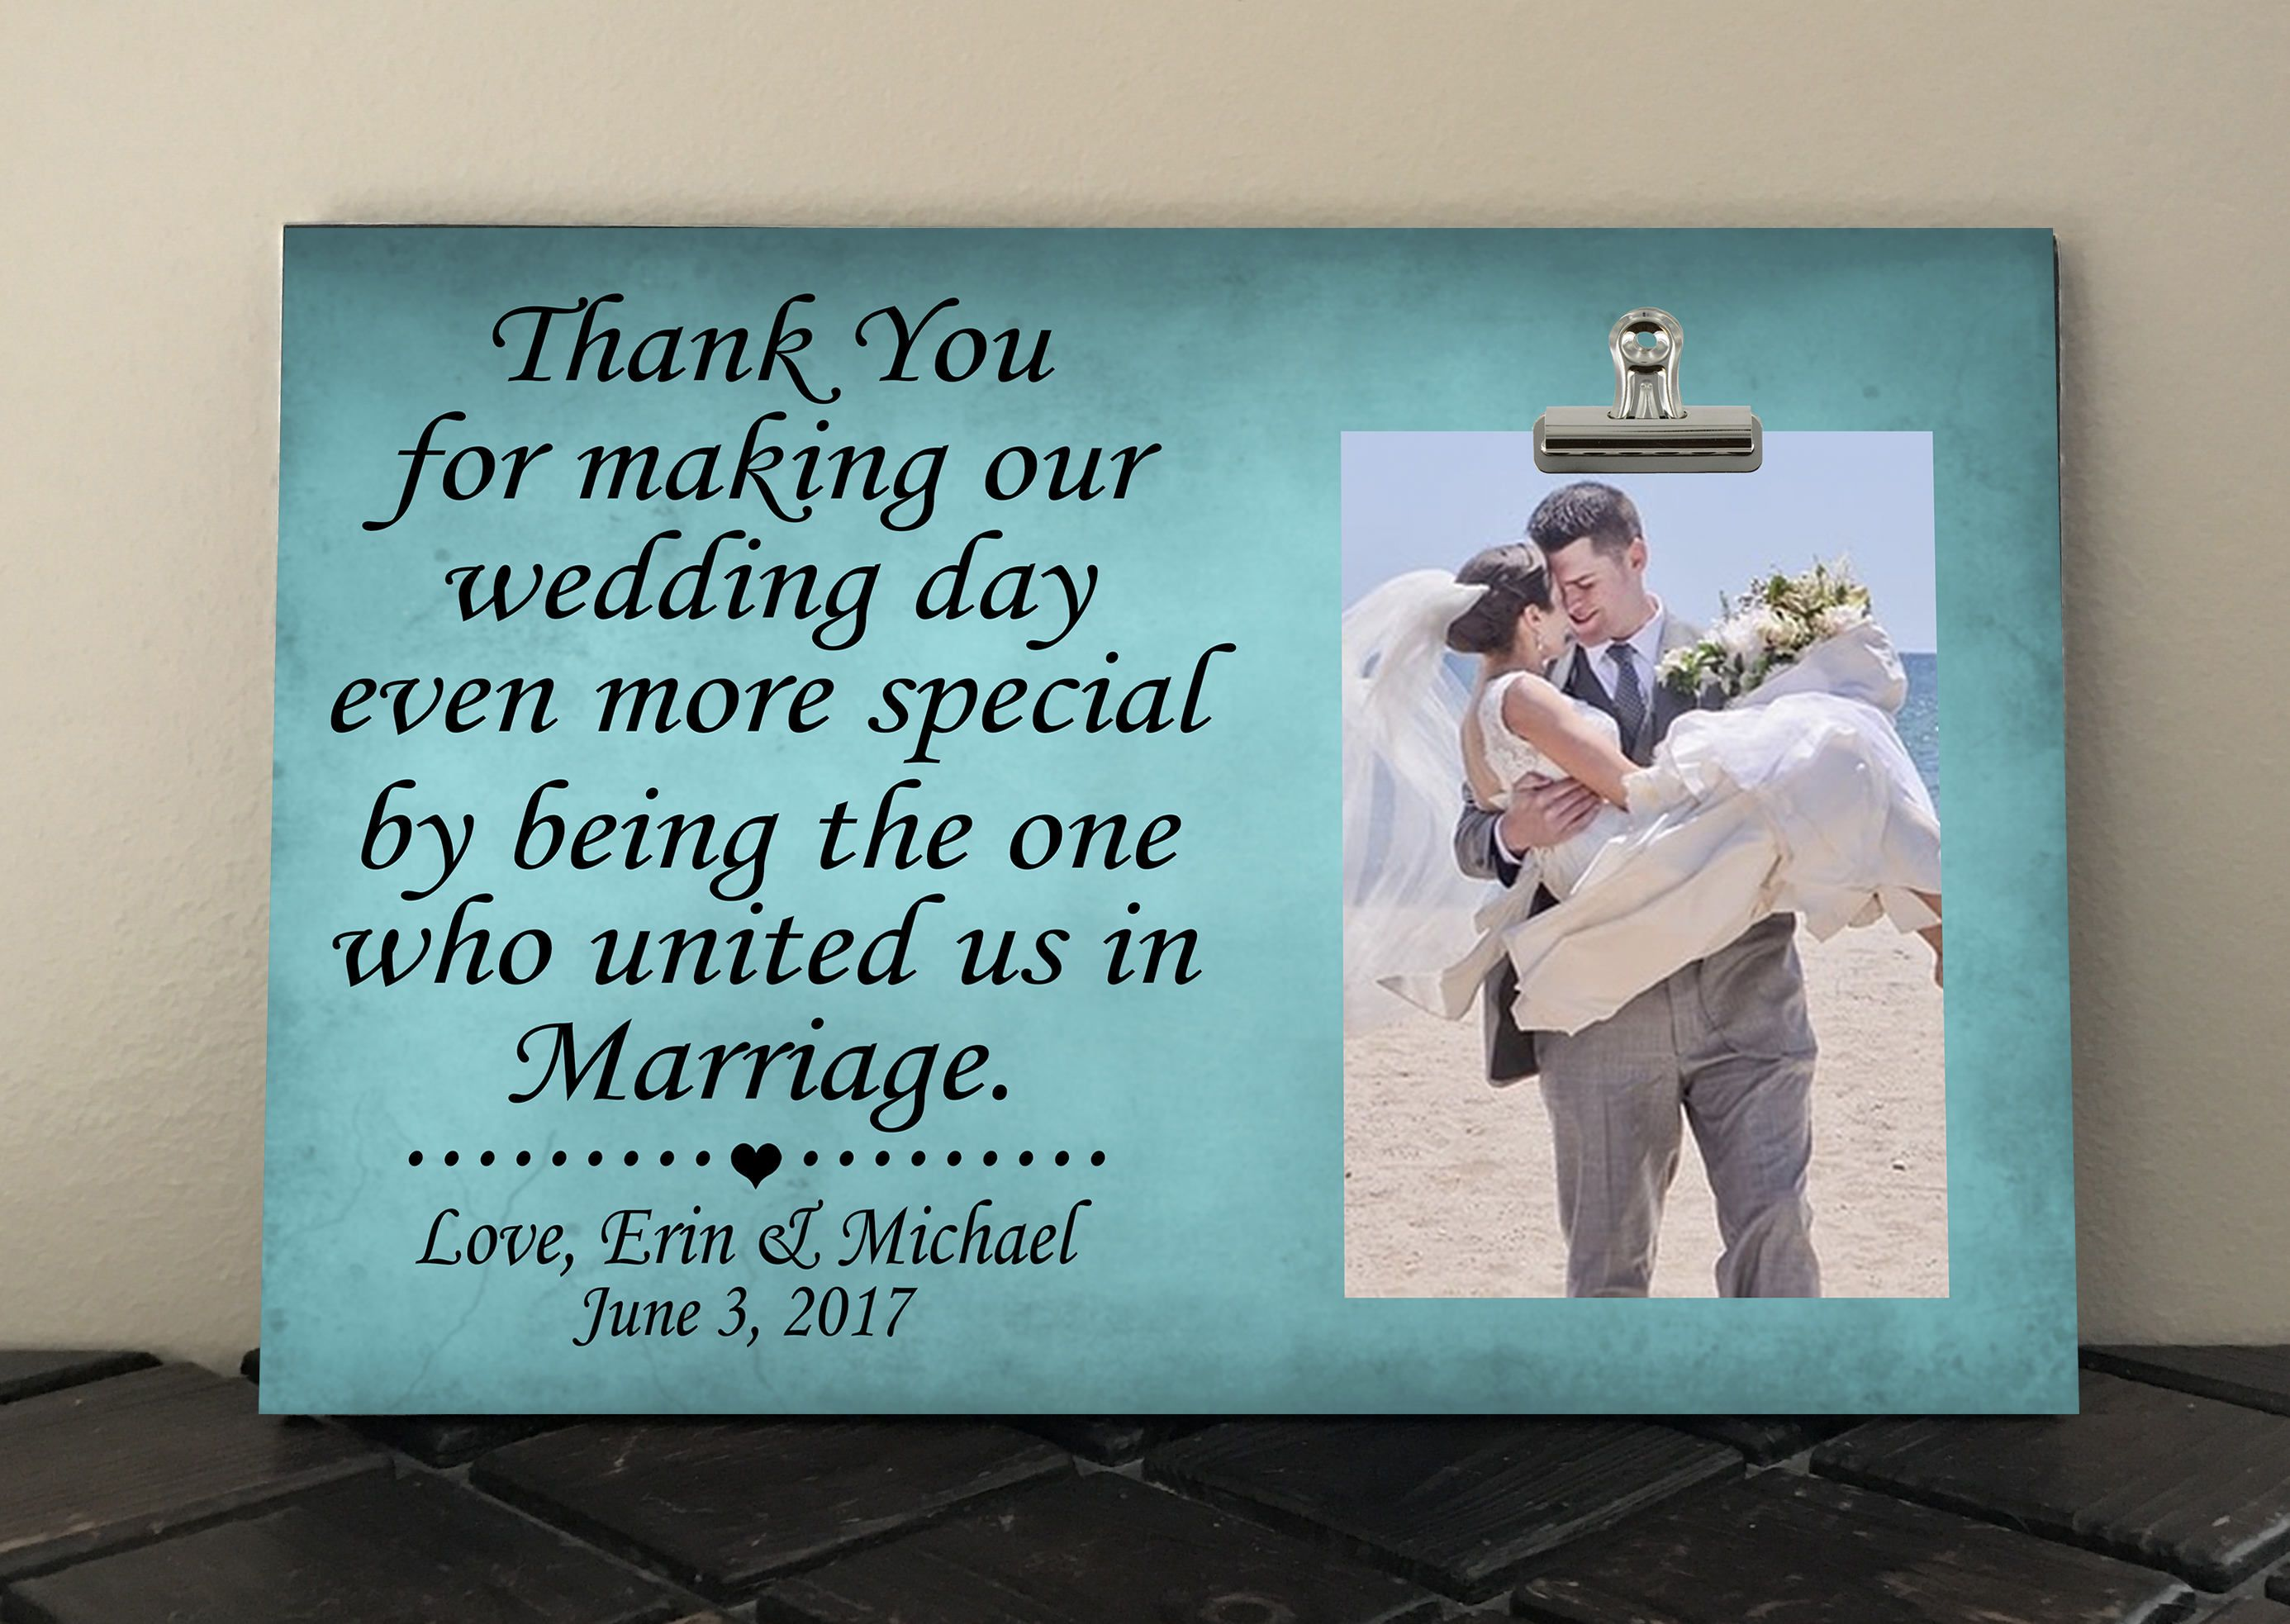 WEDDING OFFICIANT GIFT Free Design Proof And Personalization Thank You For Making Our Wedding